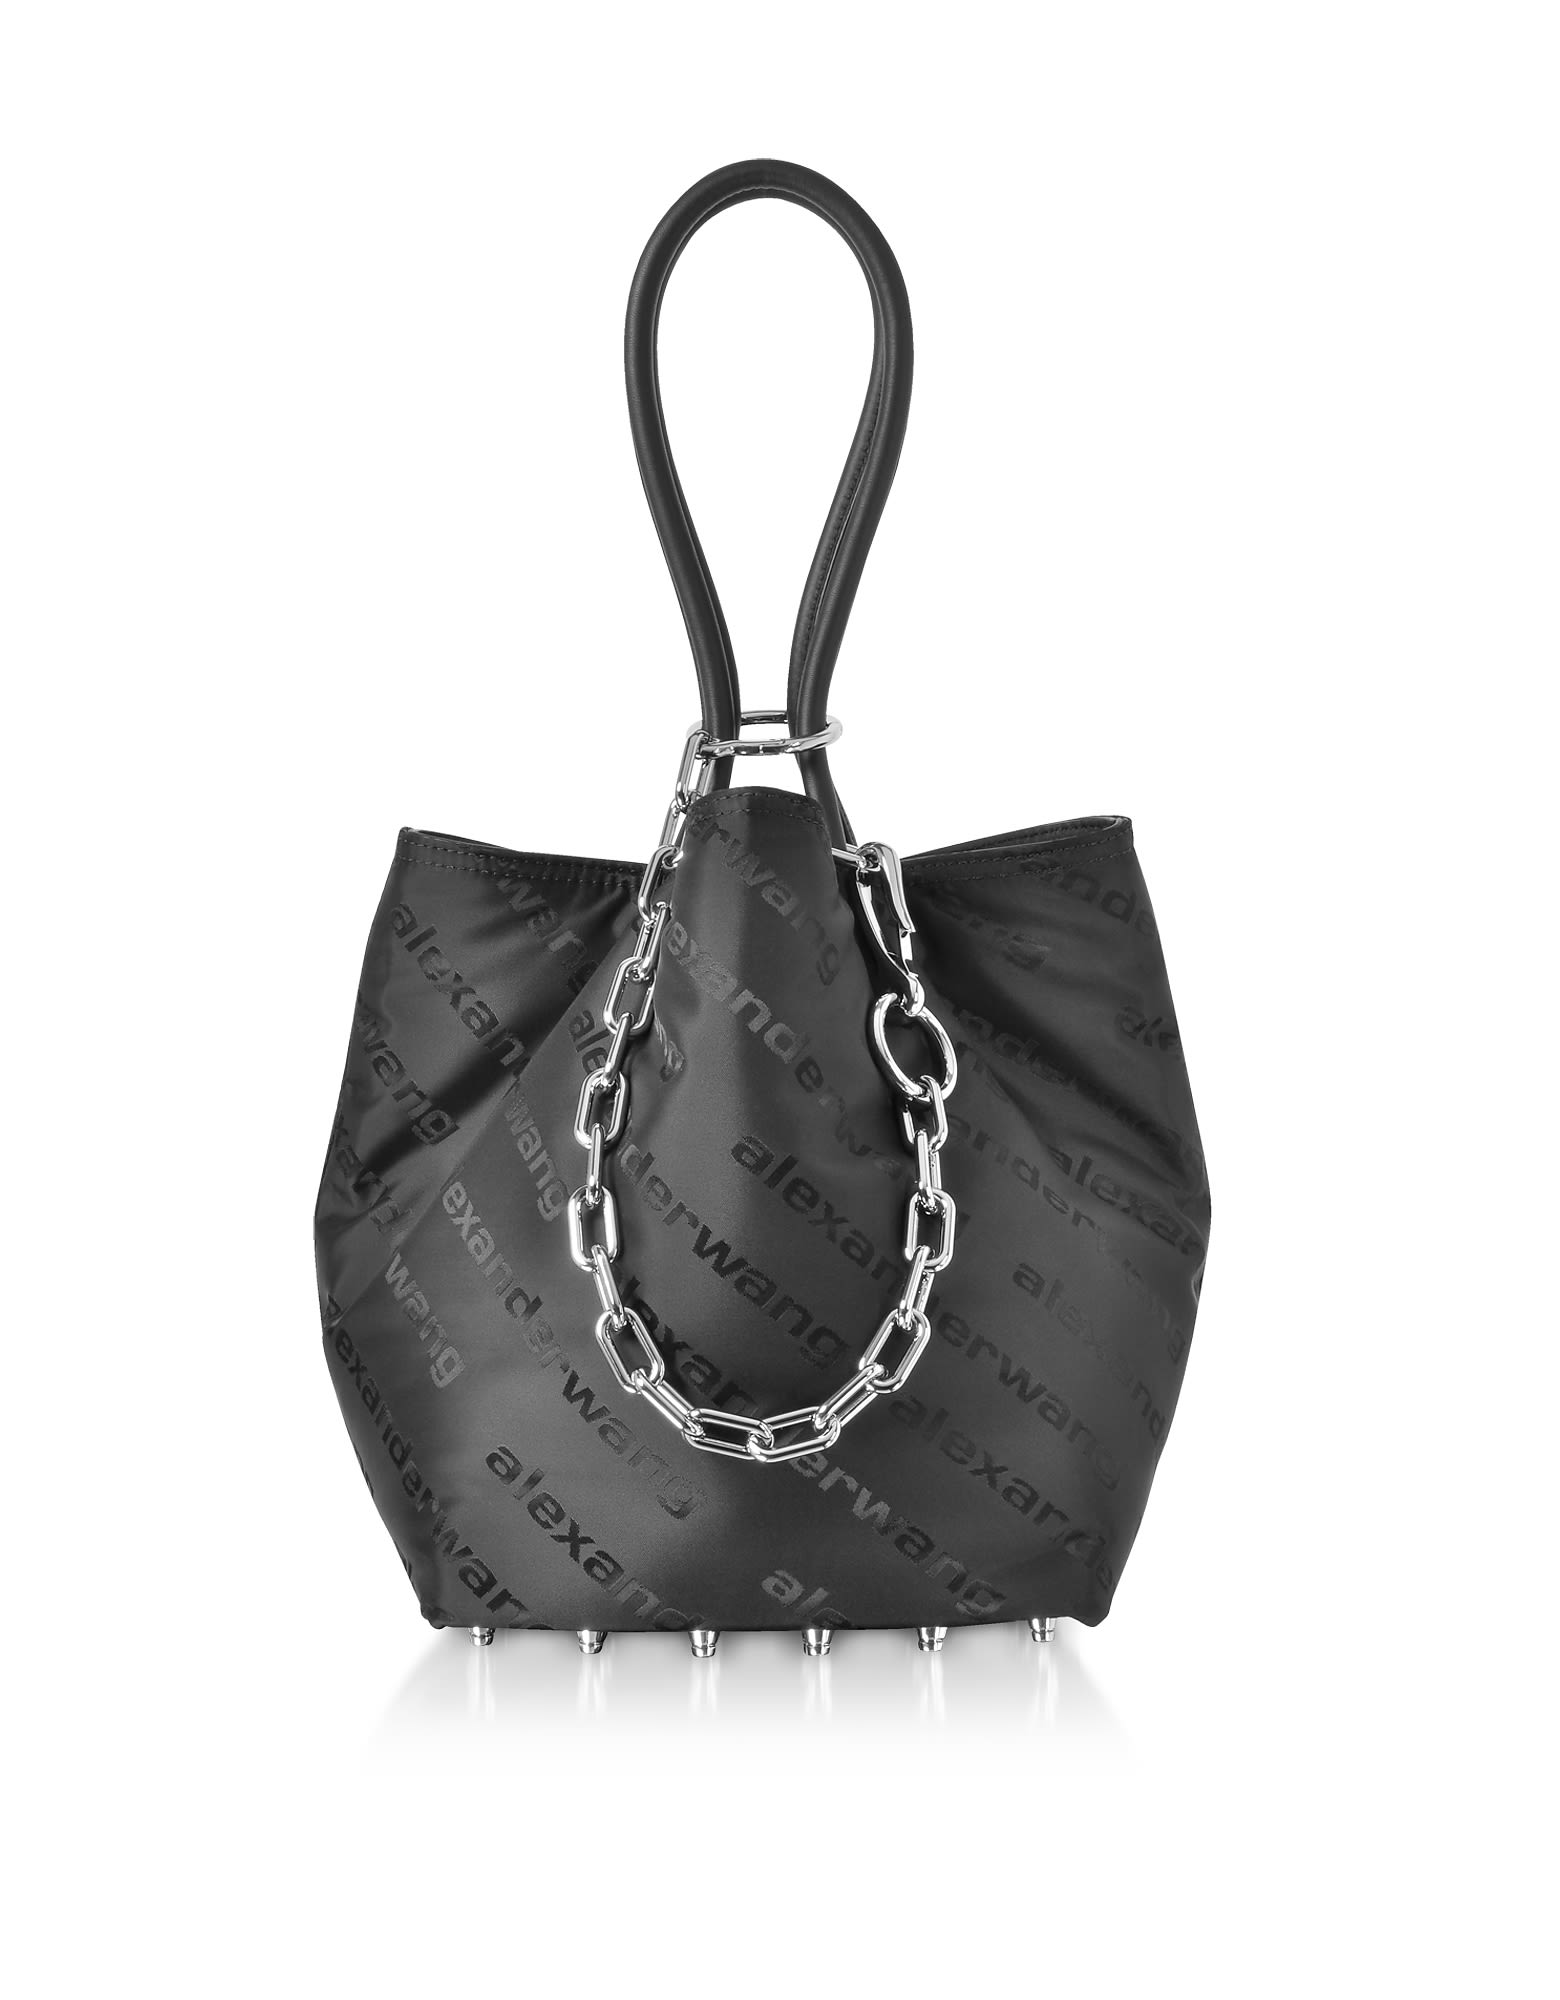 5ded385650 Alexander Wang Black Aw Signature Roxy Soft Small Tote Bag - Black ...